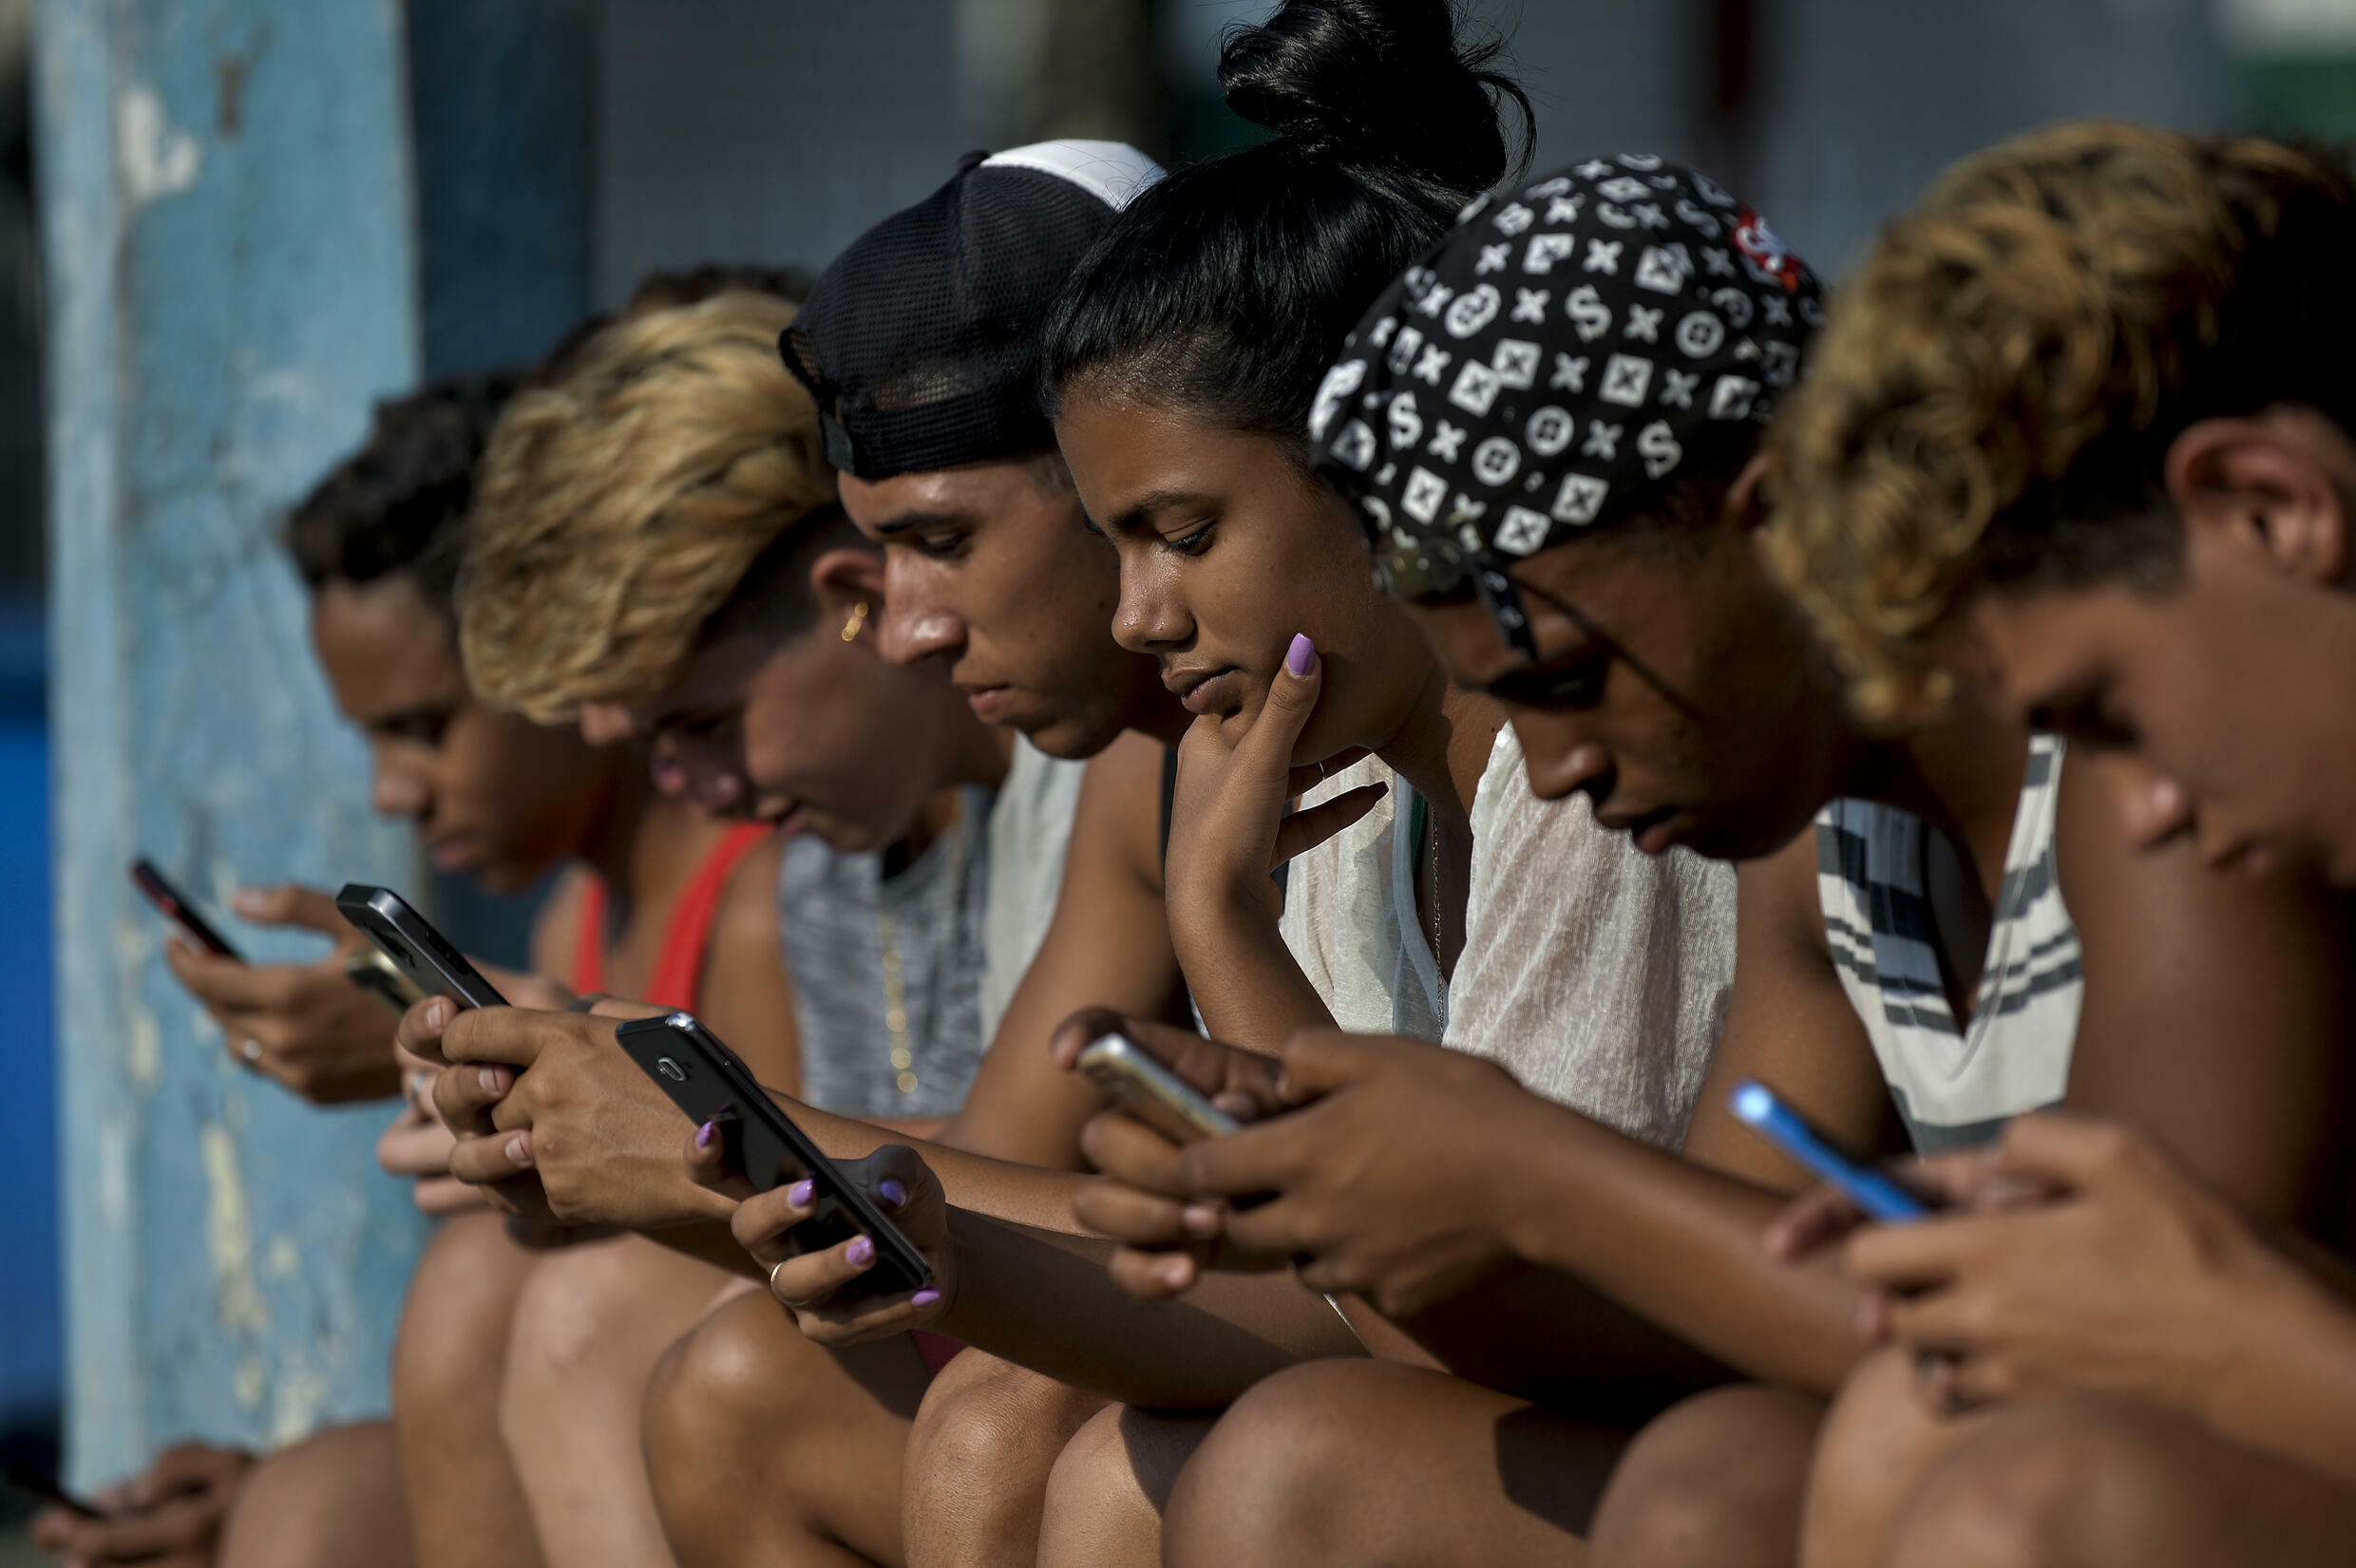 Cuba has published its first cybersecurity law, a move critics have dismissed as a tool to limit political and civic freedoms